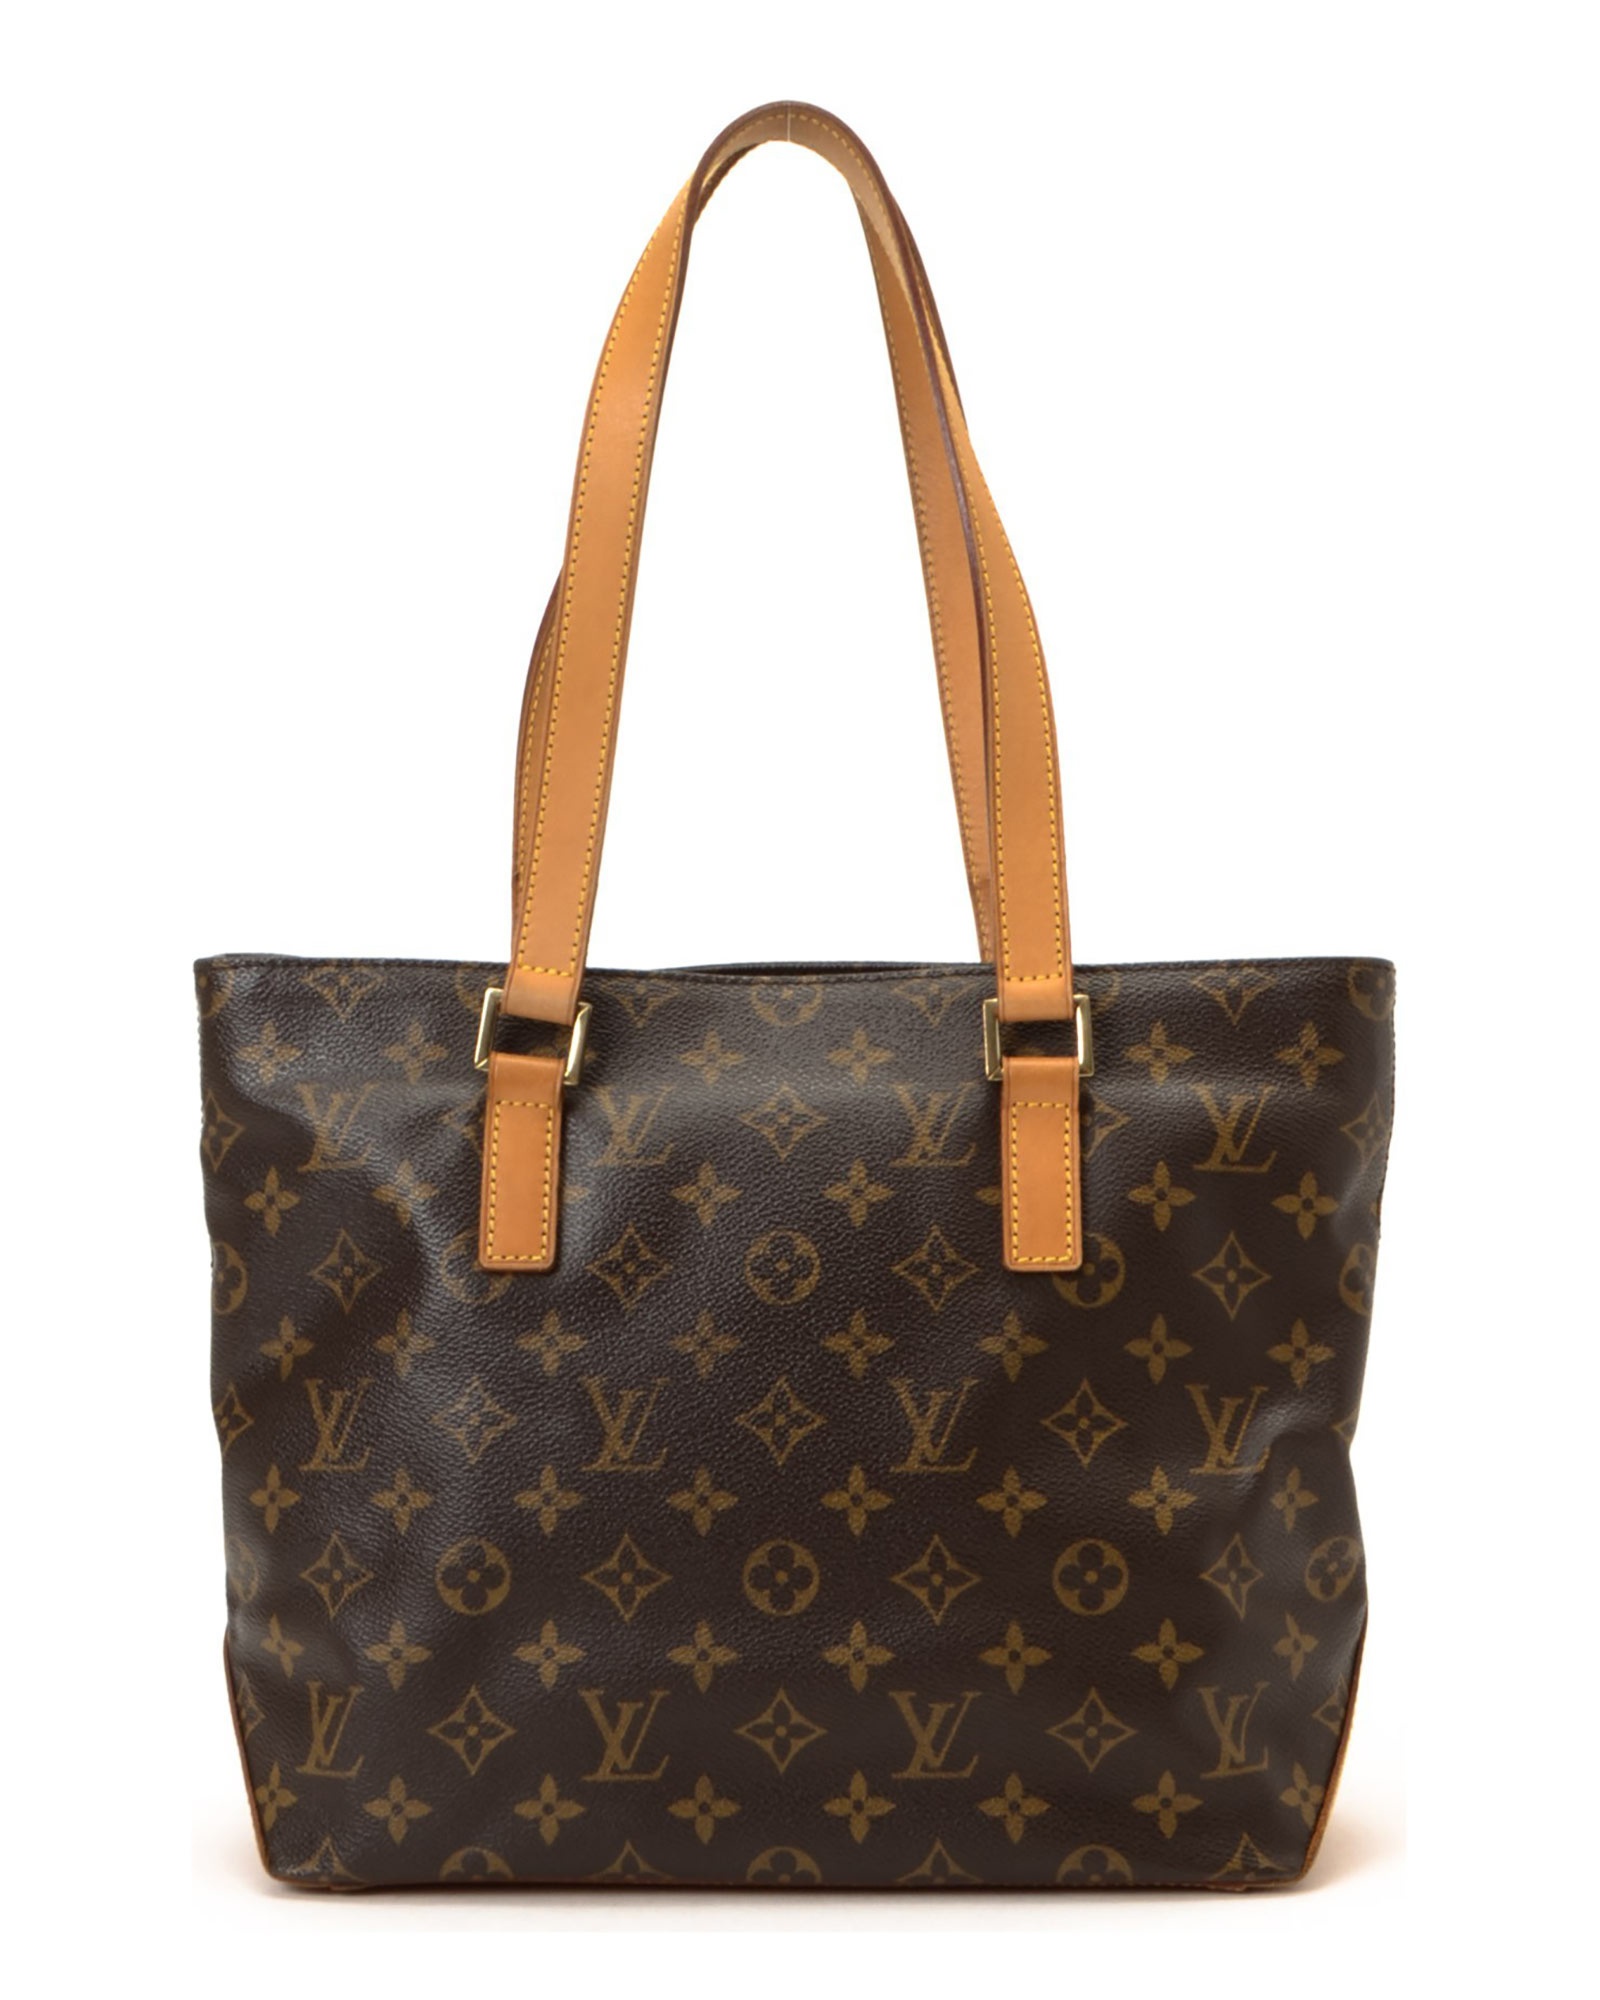 Louis vuitton tote bag vintage in brown lyst for Louis vuitton miroir bags